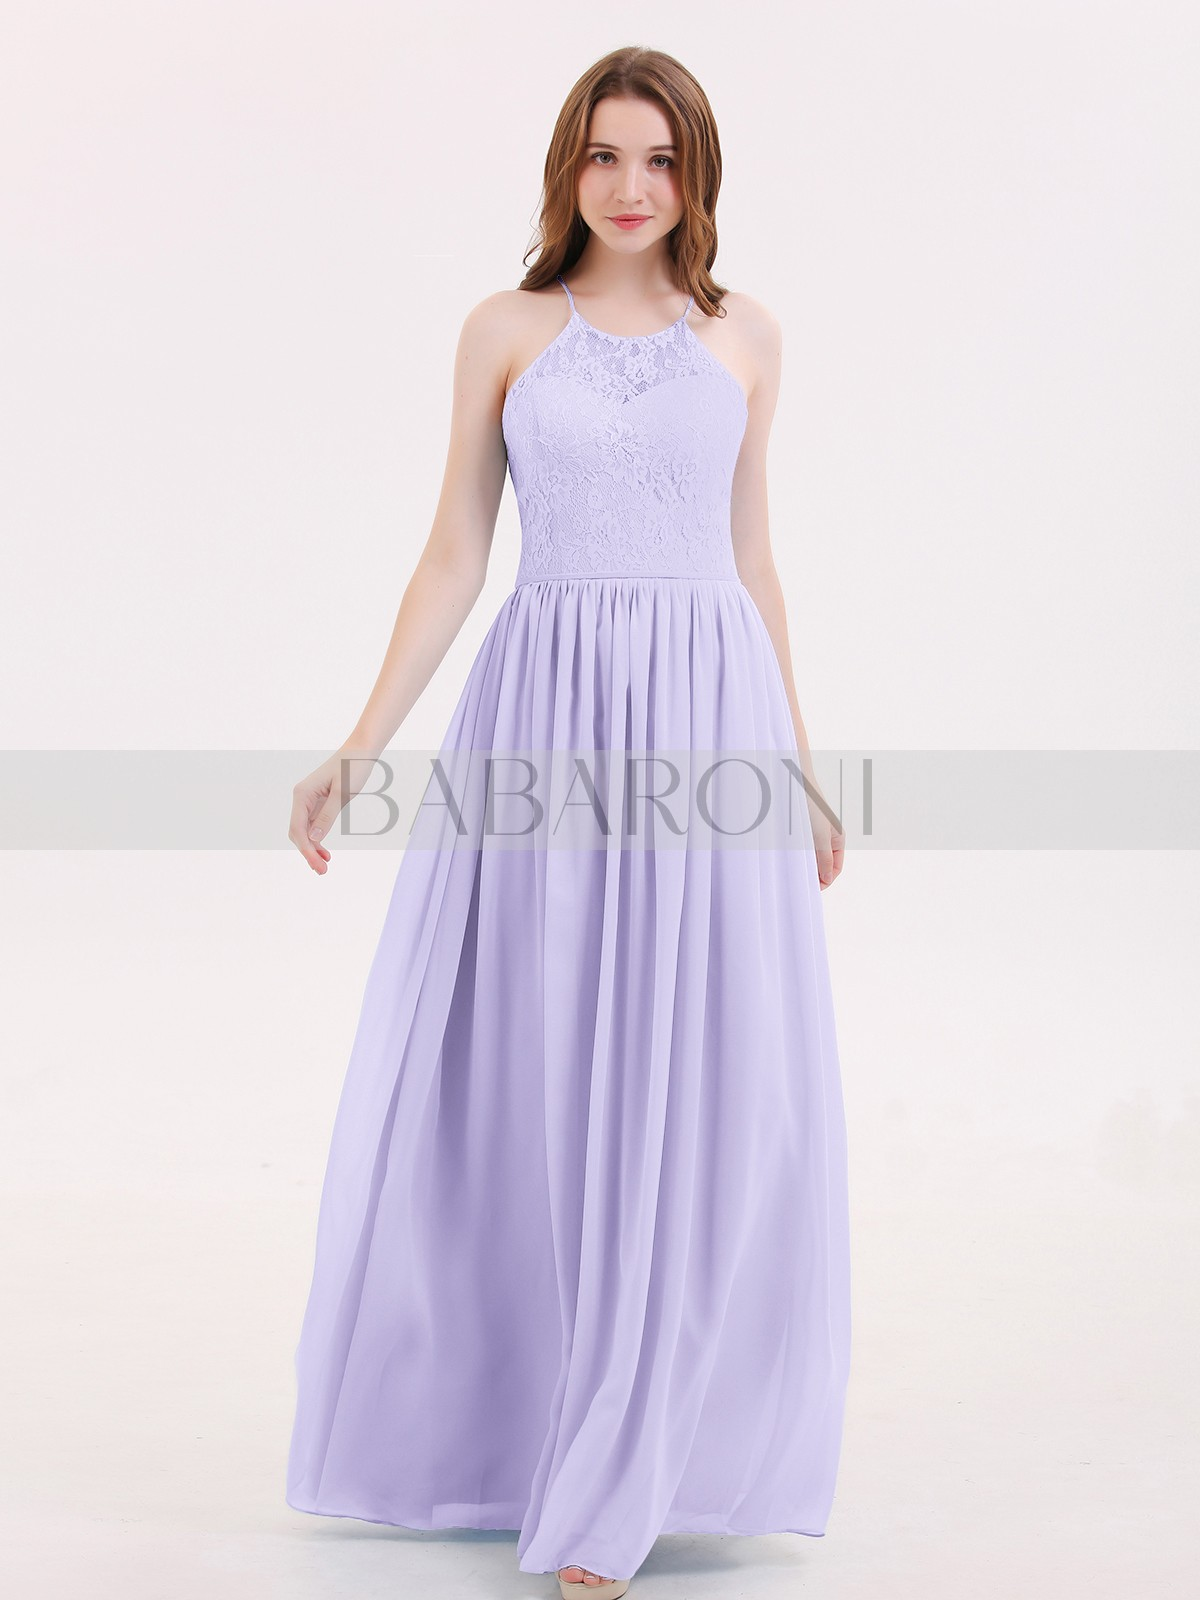 8afe7fffda355 A-line Chiffon Sky Blue Lace-up Lace, Ruched Floor-length Halter. Loading  zoom